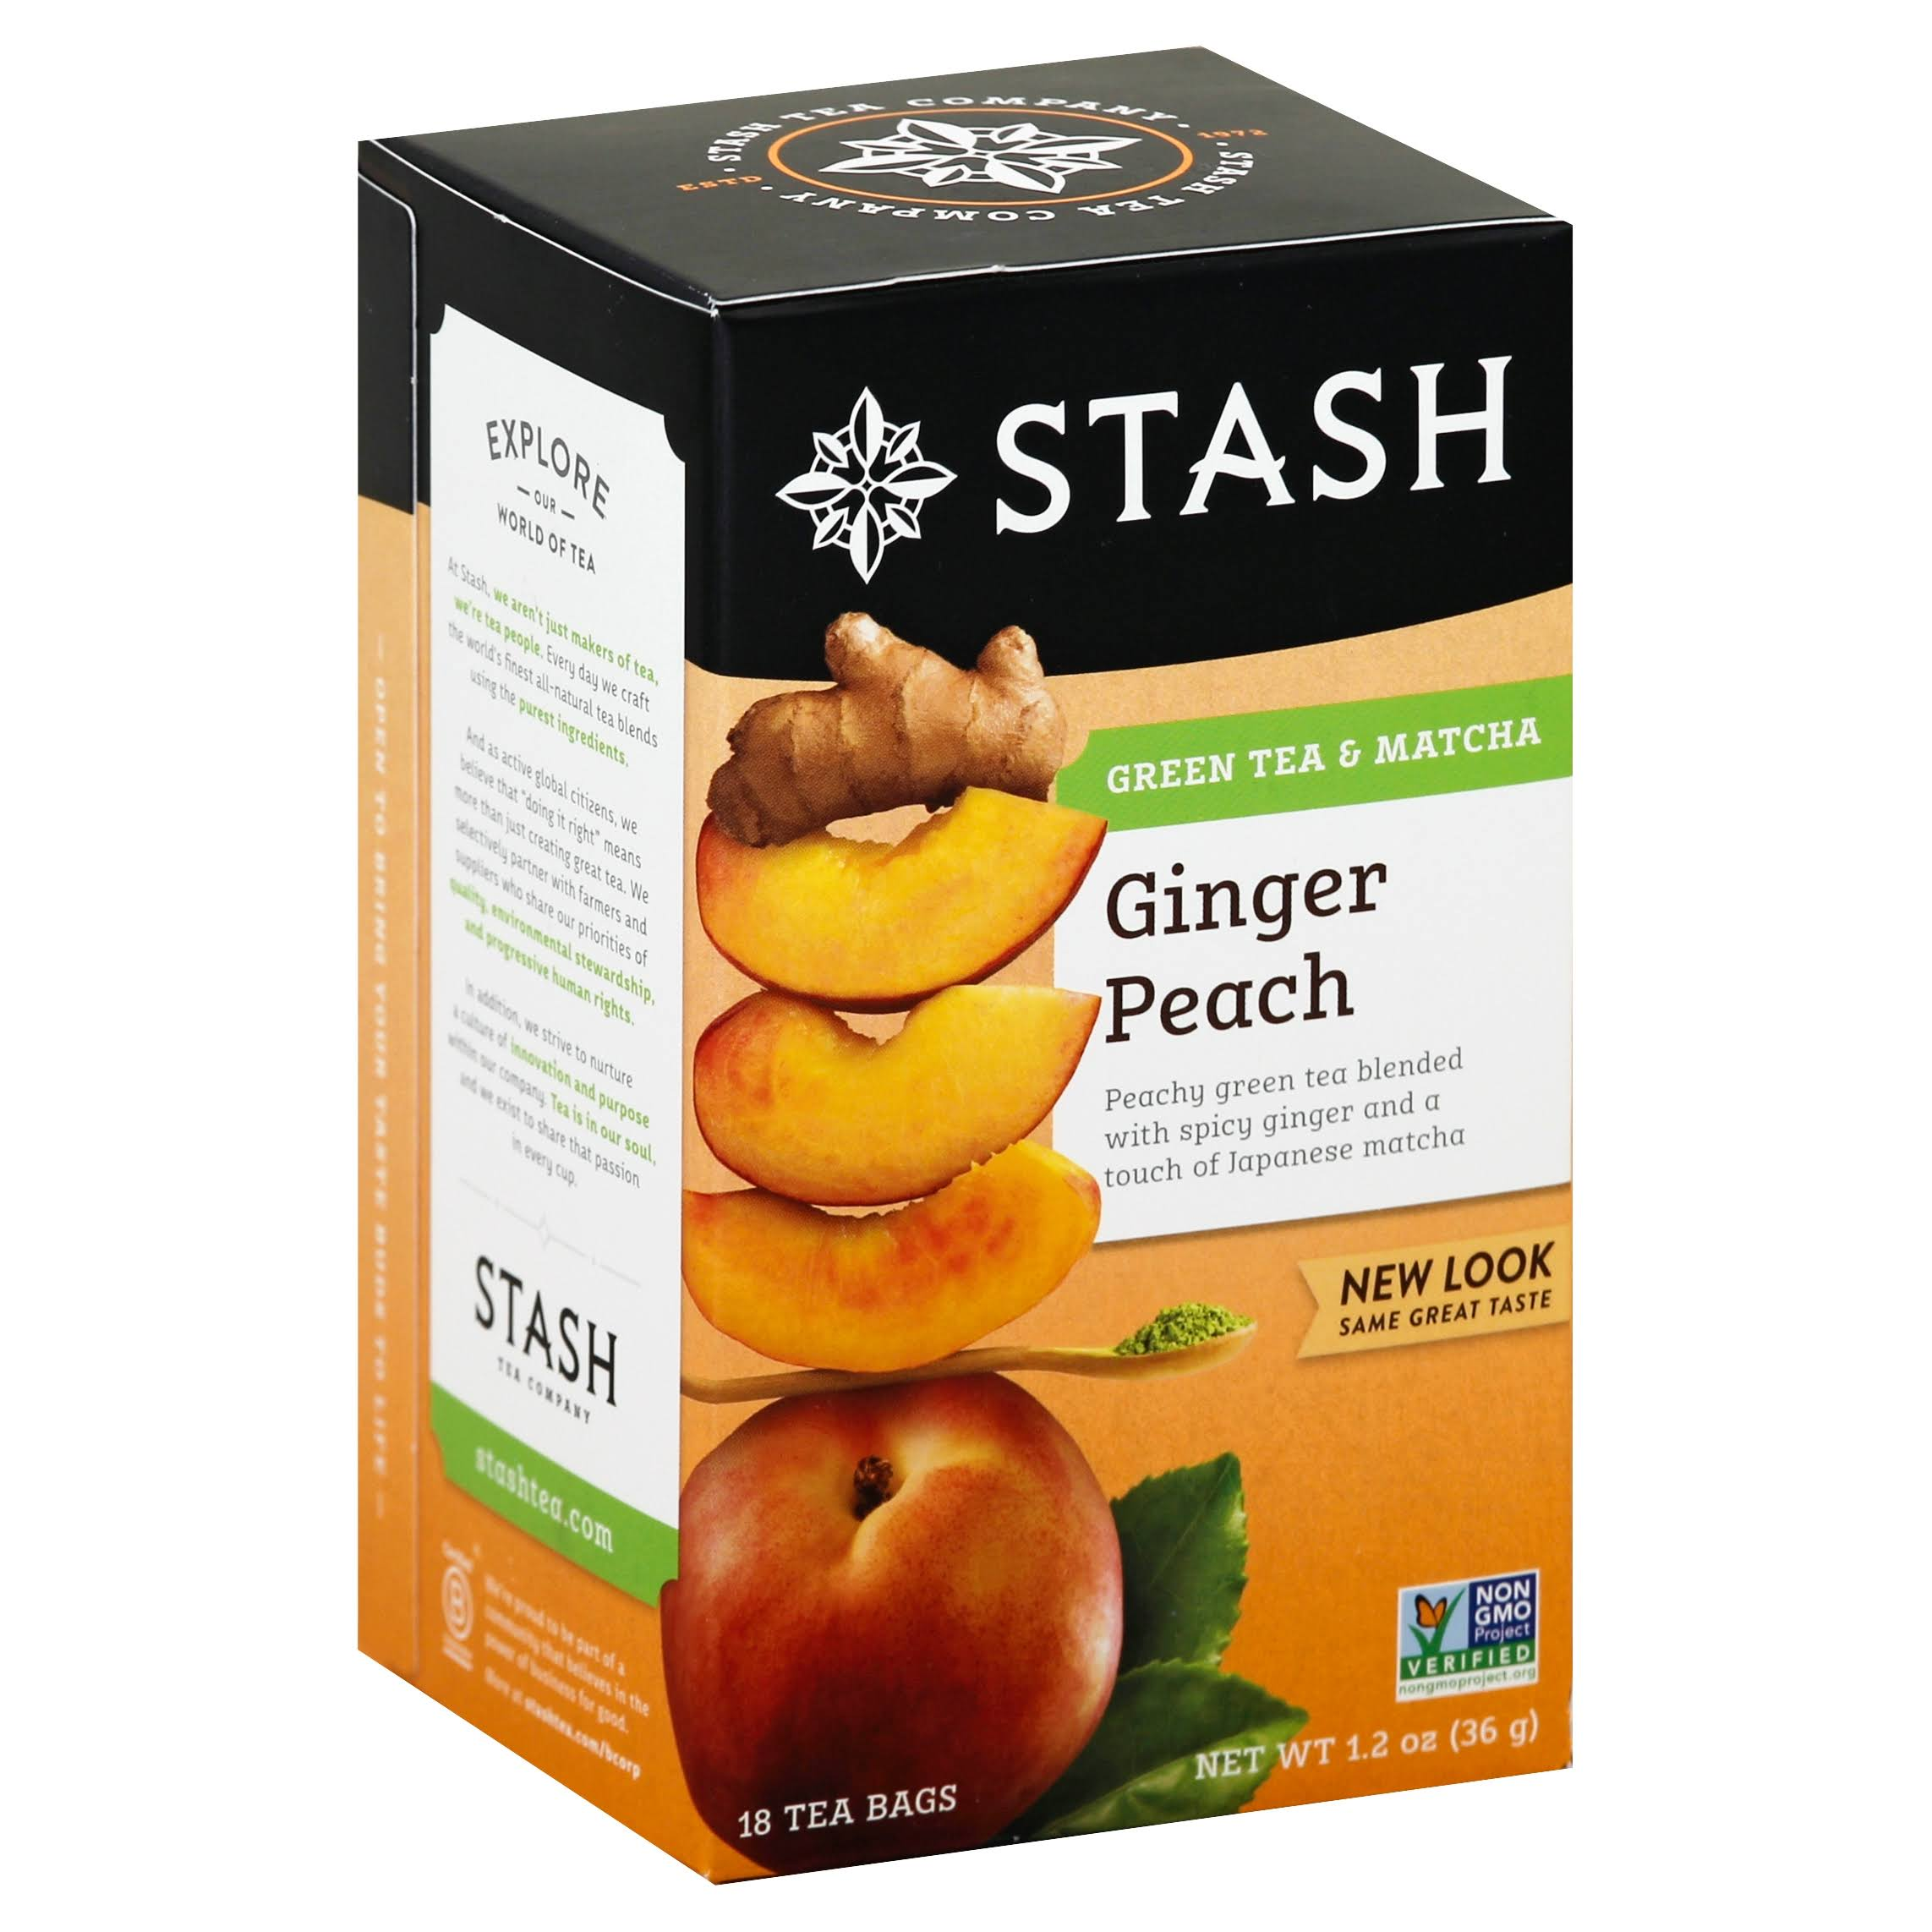 Stash Ginger Peach with Matcha Green Tea Tea Bags - 18 x 1.2 oz Pack